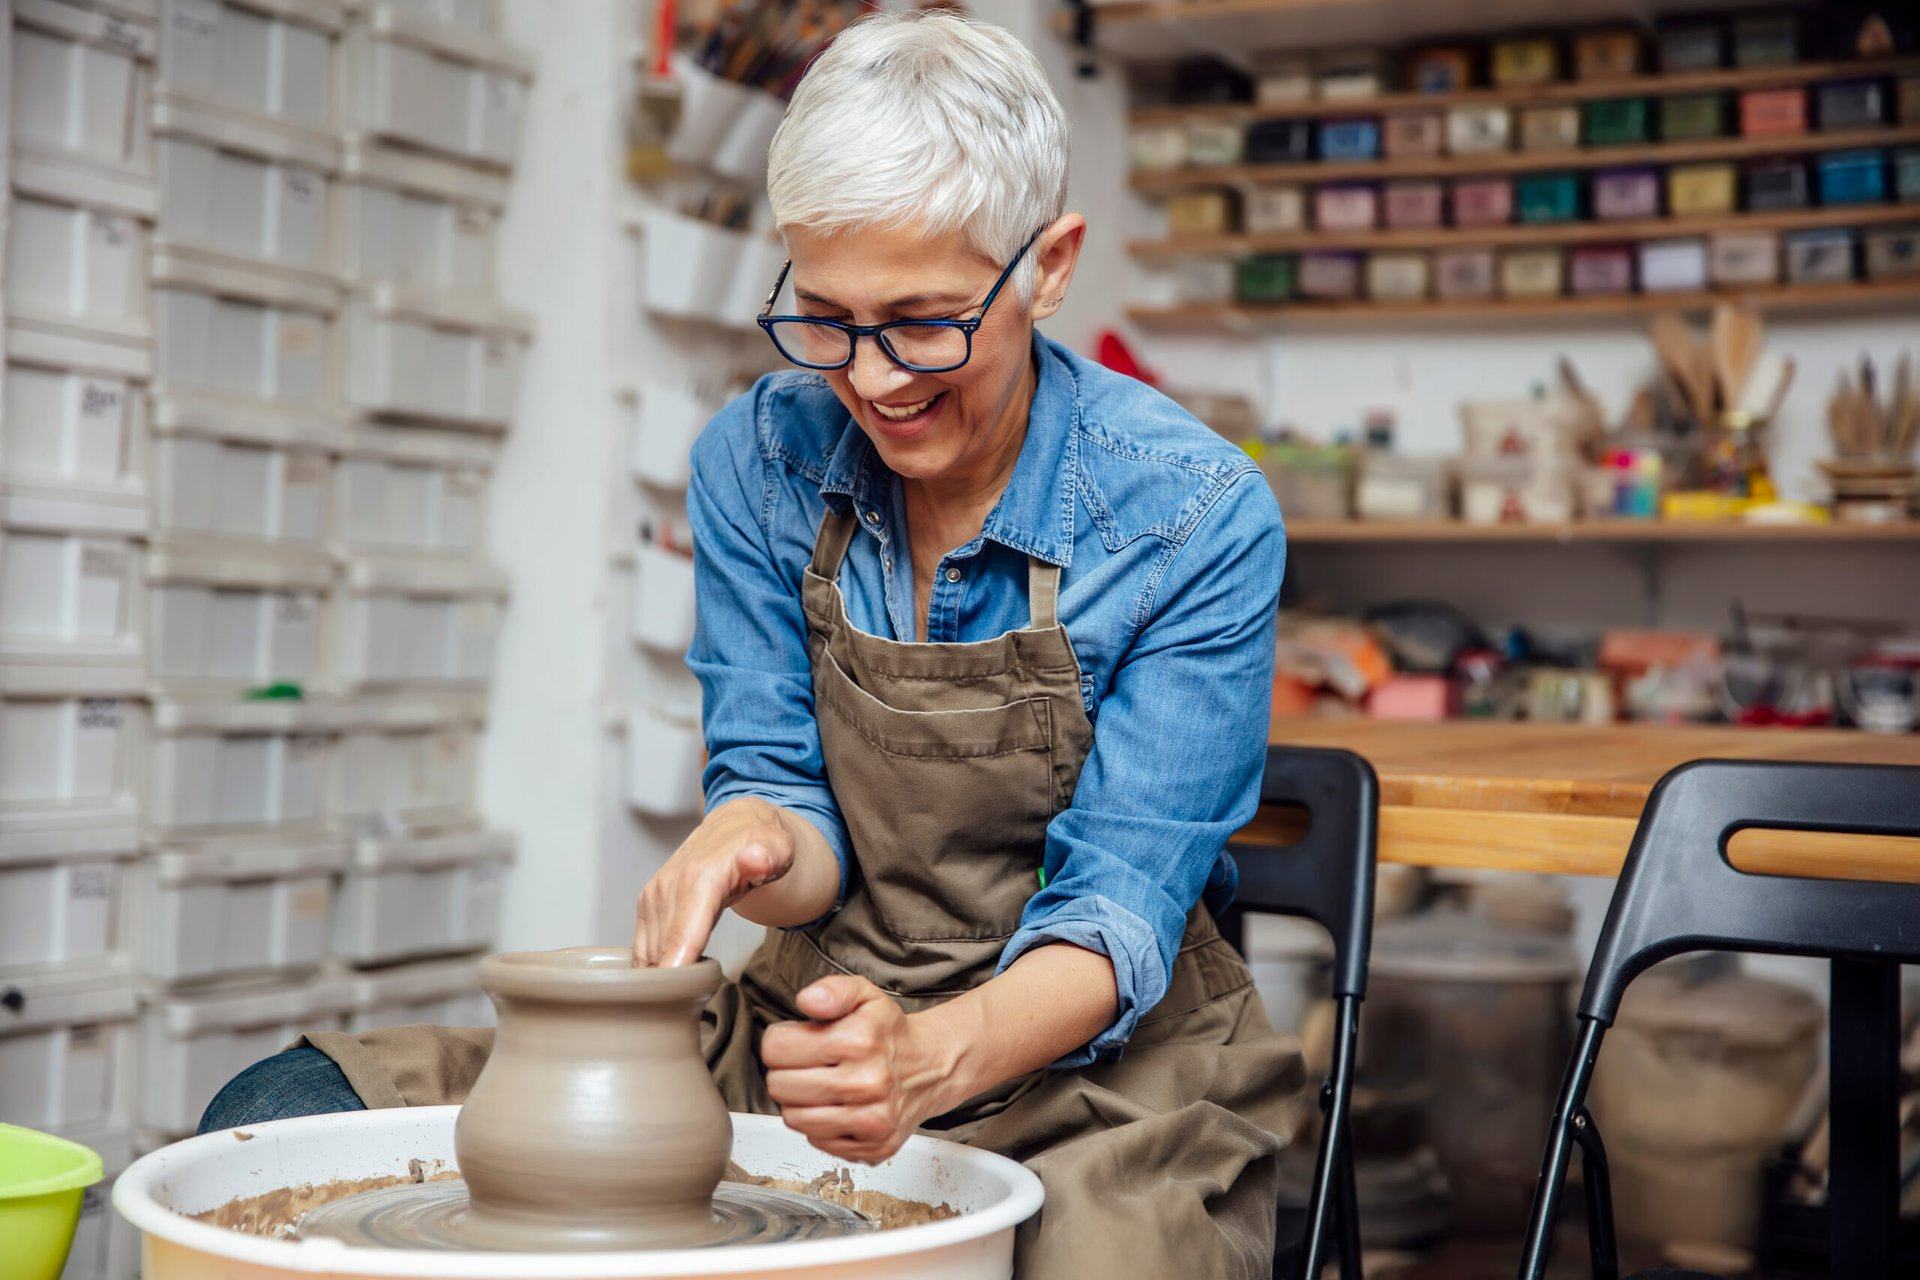 The Top 4 Reasons Americans Plan to Take an Early Retirement